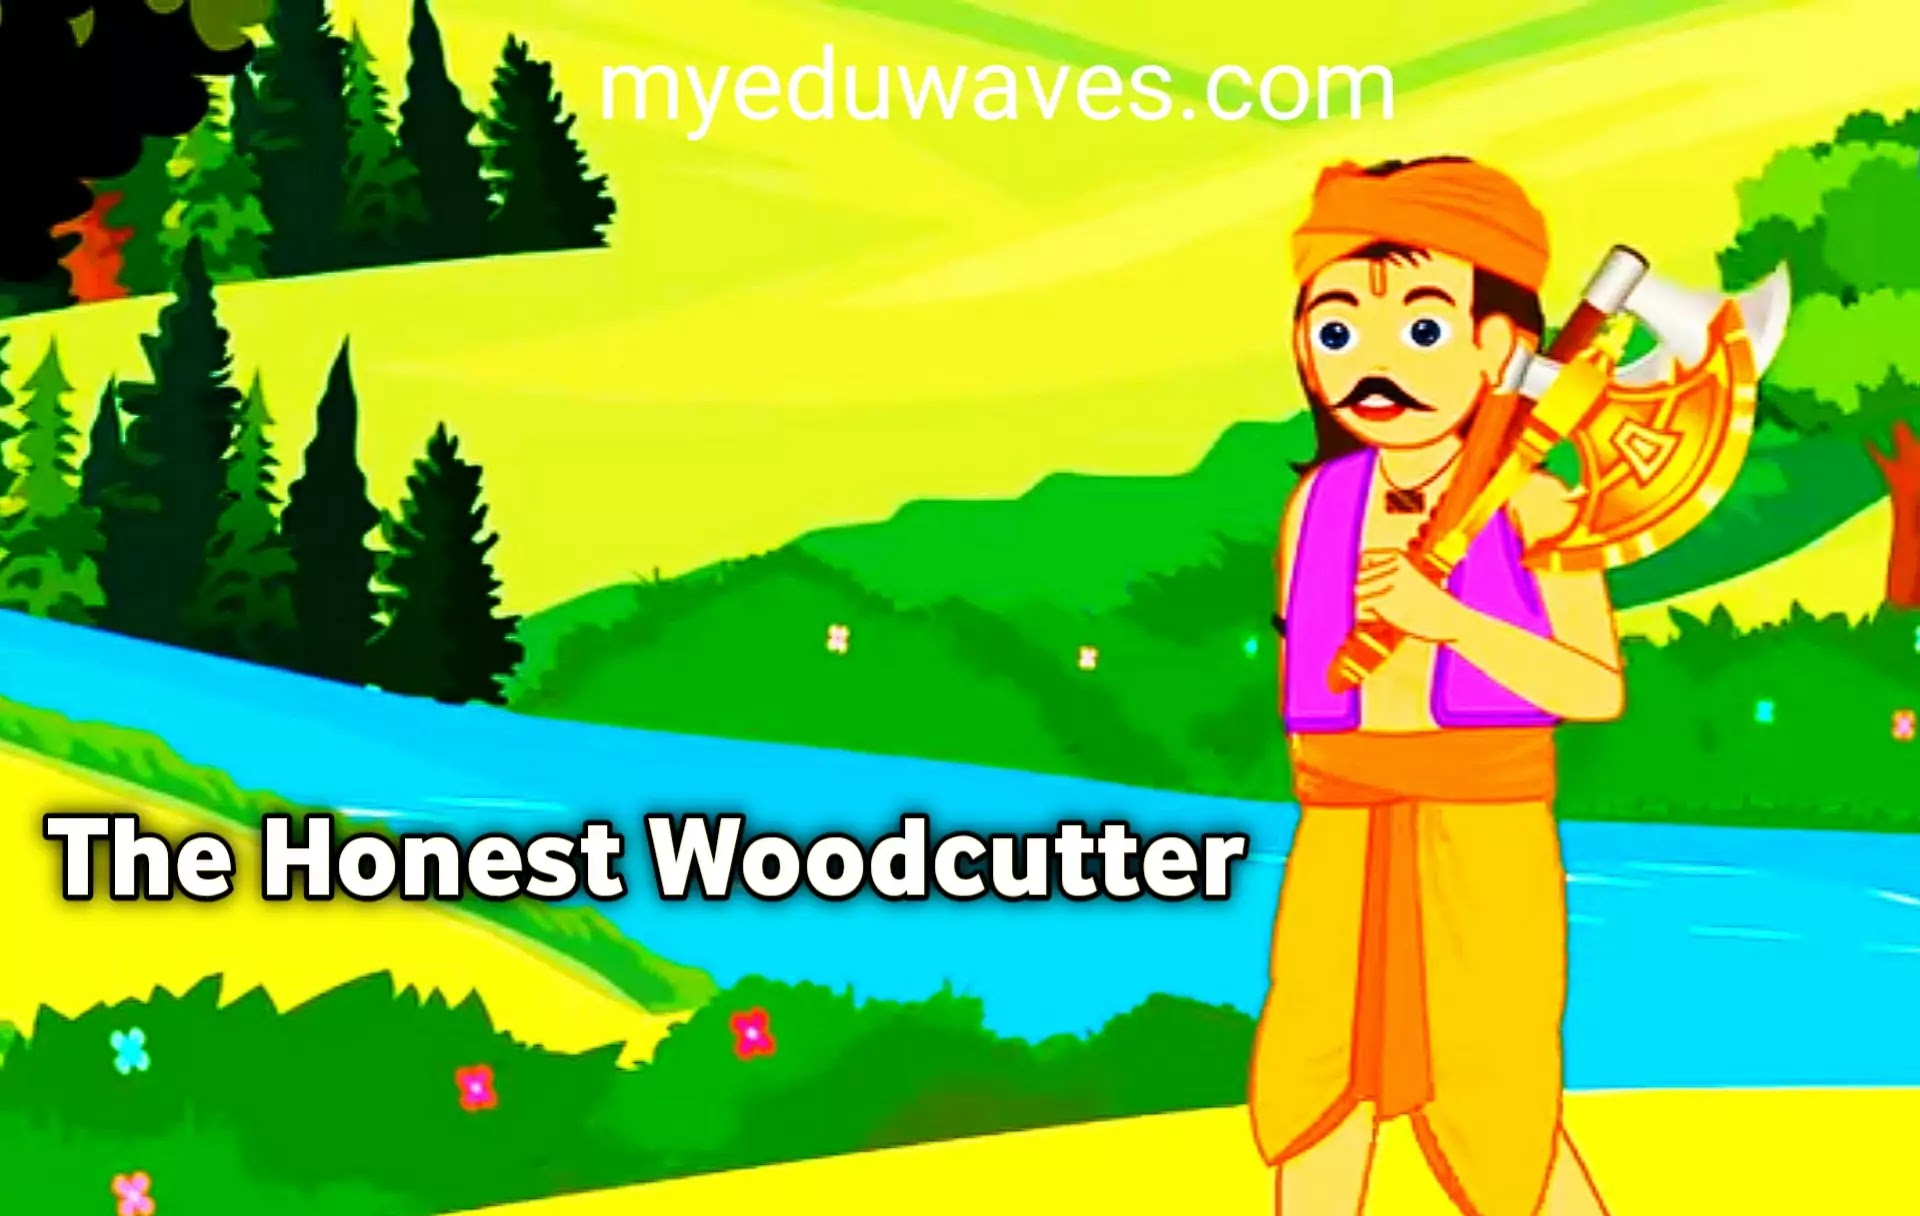 The Honest Woodcutter: Short Moral Story in English